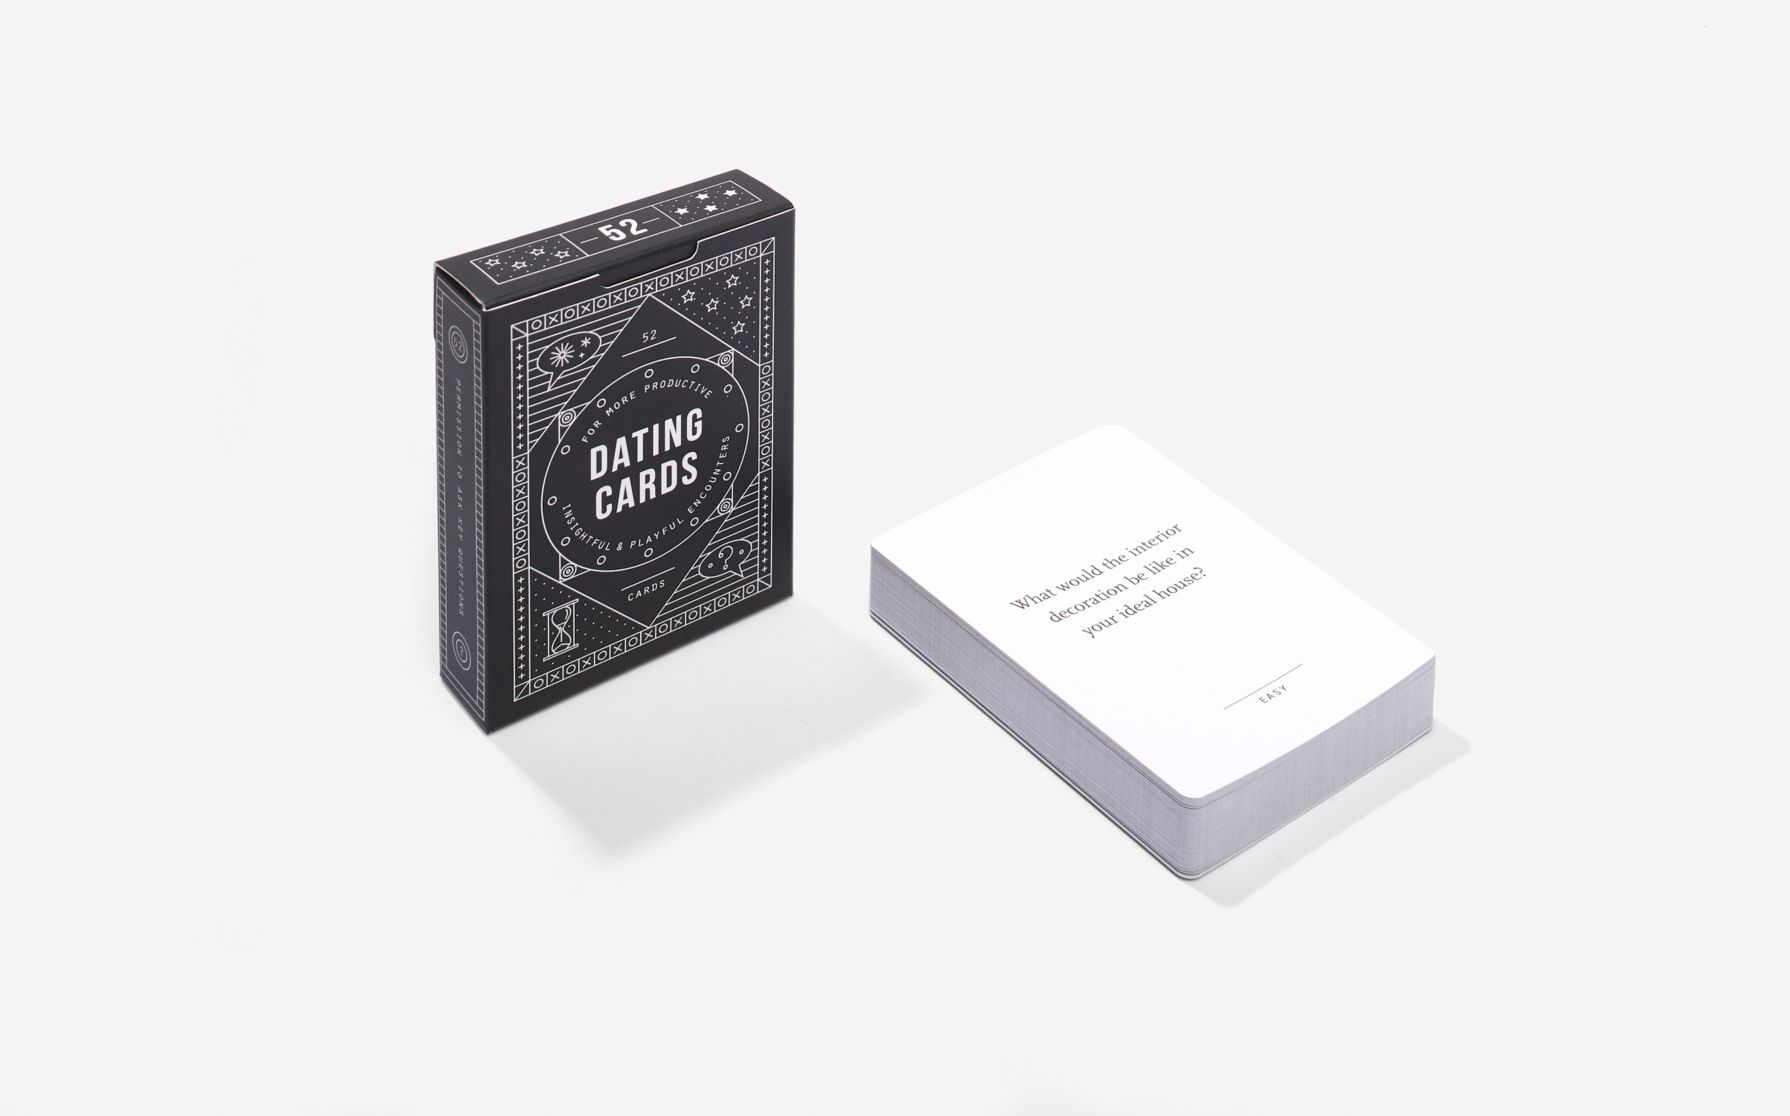 Dating Cards: For More Productive Insightful & Playful Encounters